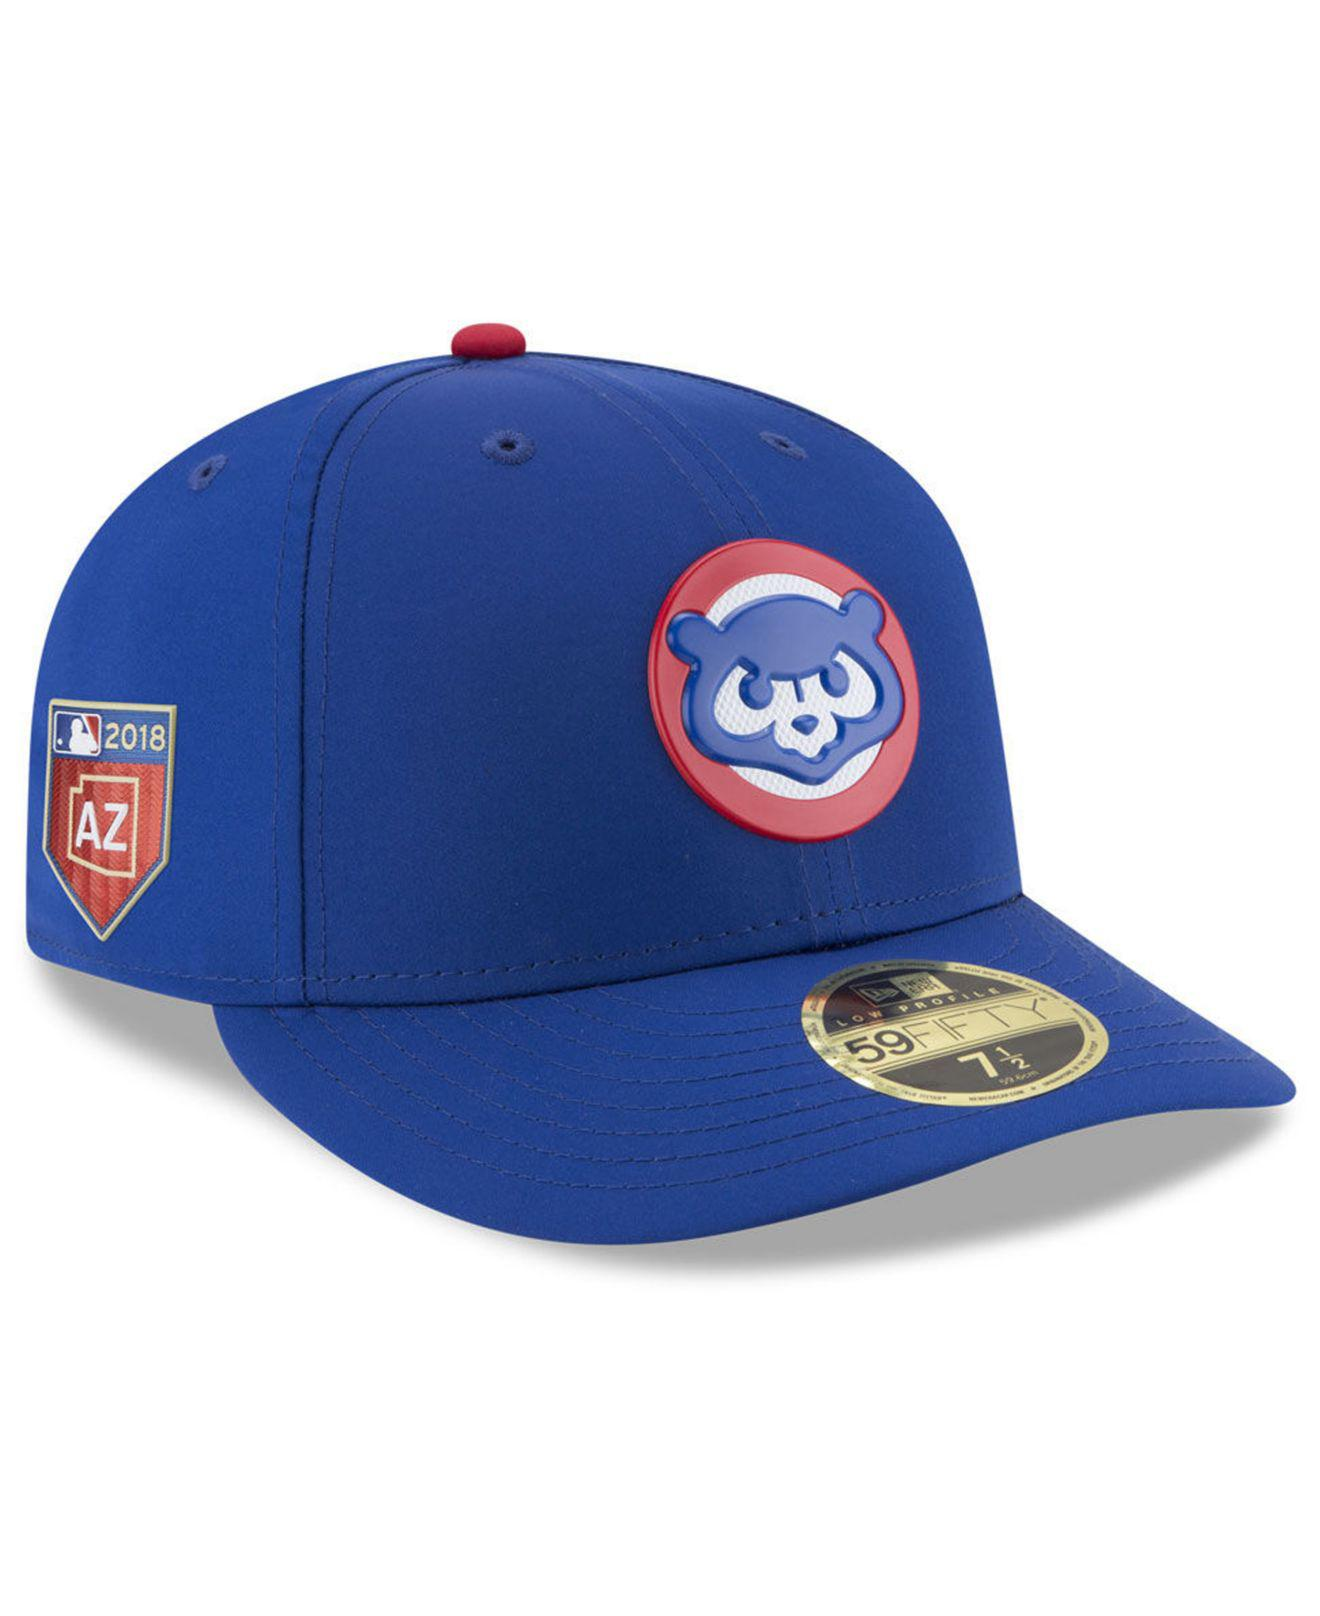 113f6a608 KTZ. Men's Blue Chicago Cubs Spring Training Pro Light Low Profile 59fifty  Fitted Cap